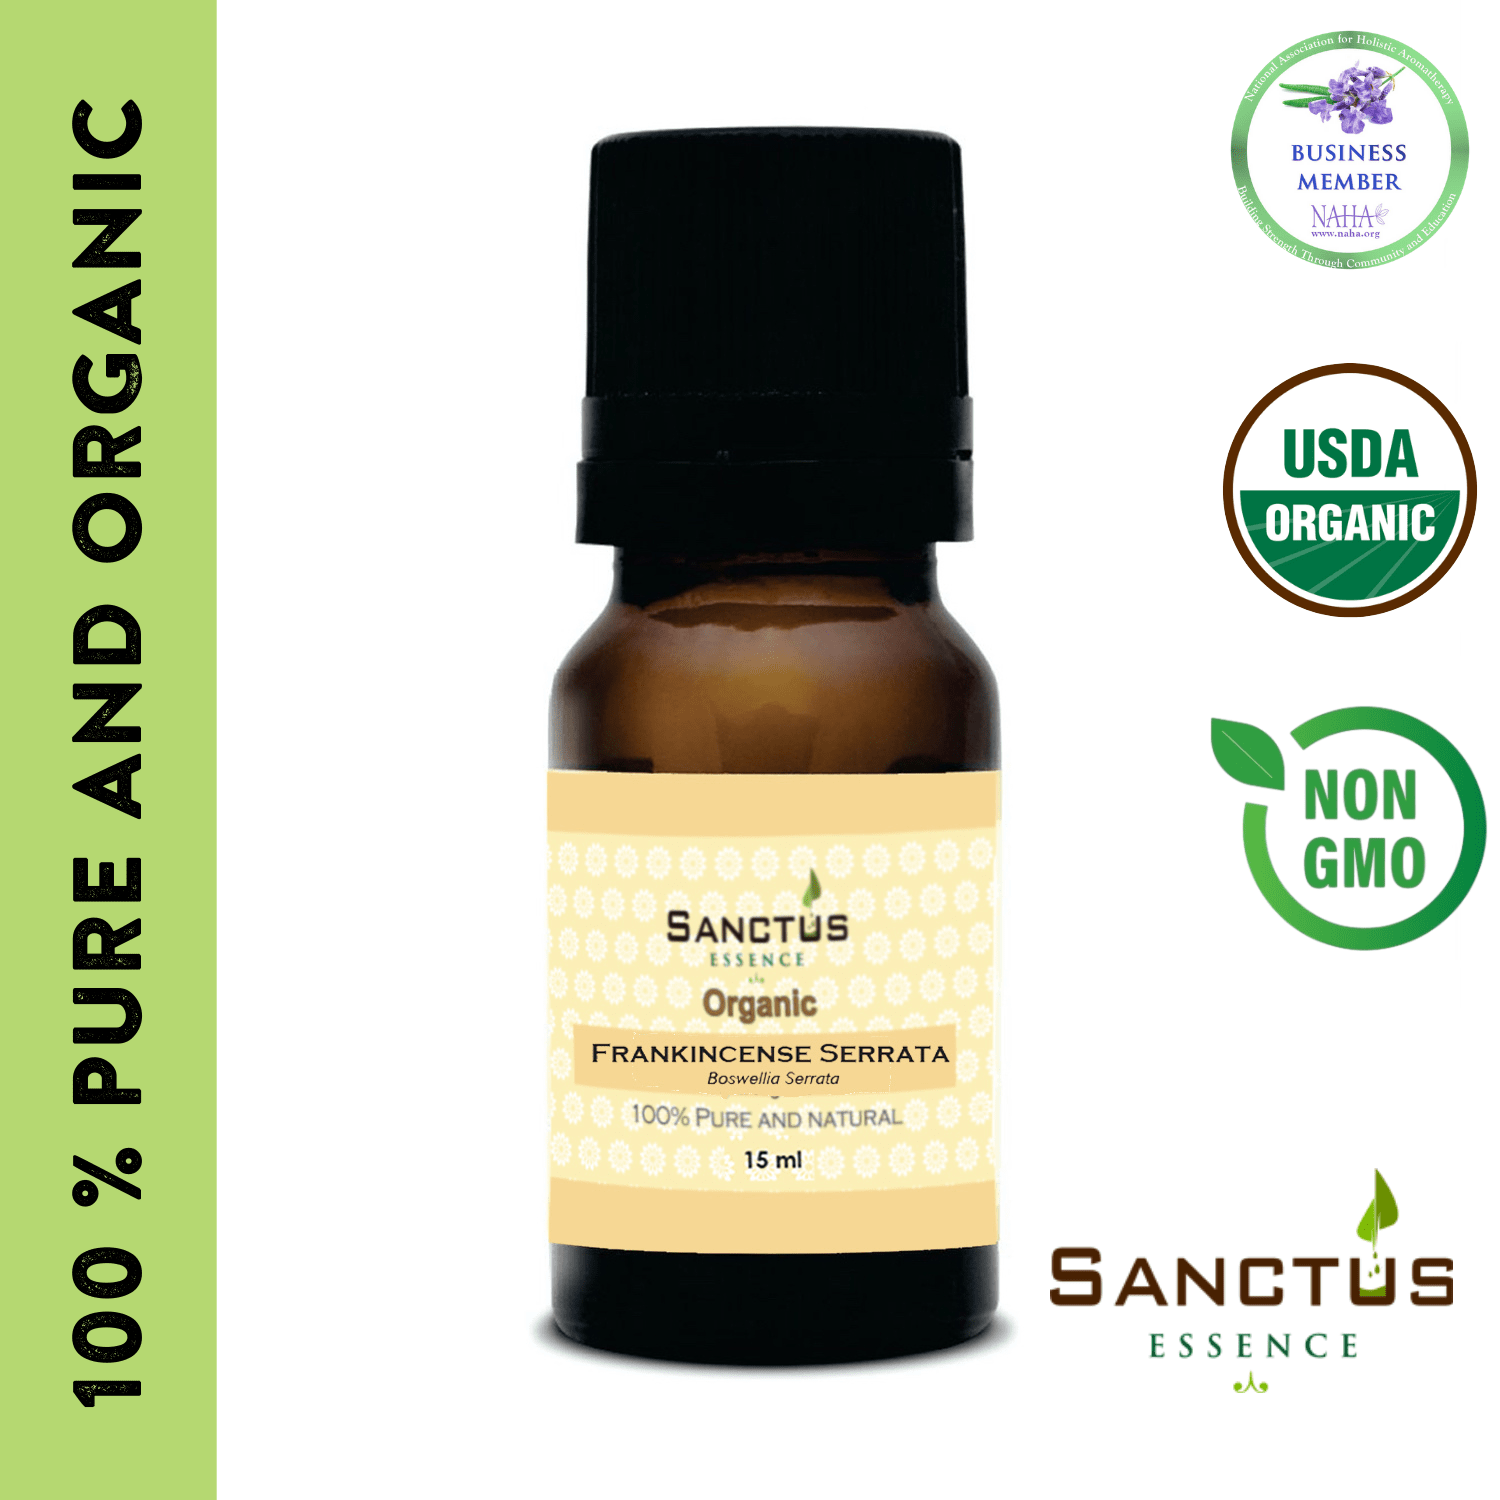 Organic Frankincense Serrata Oil